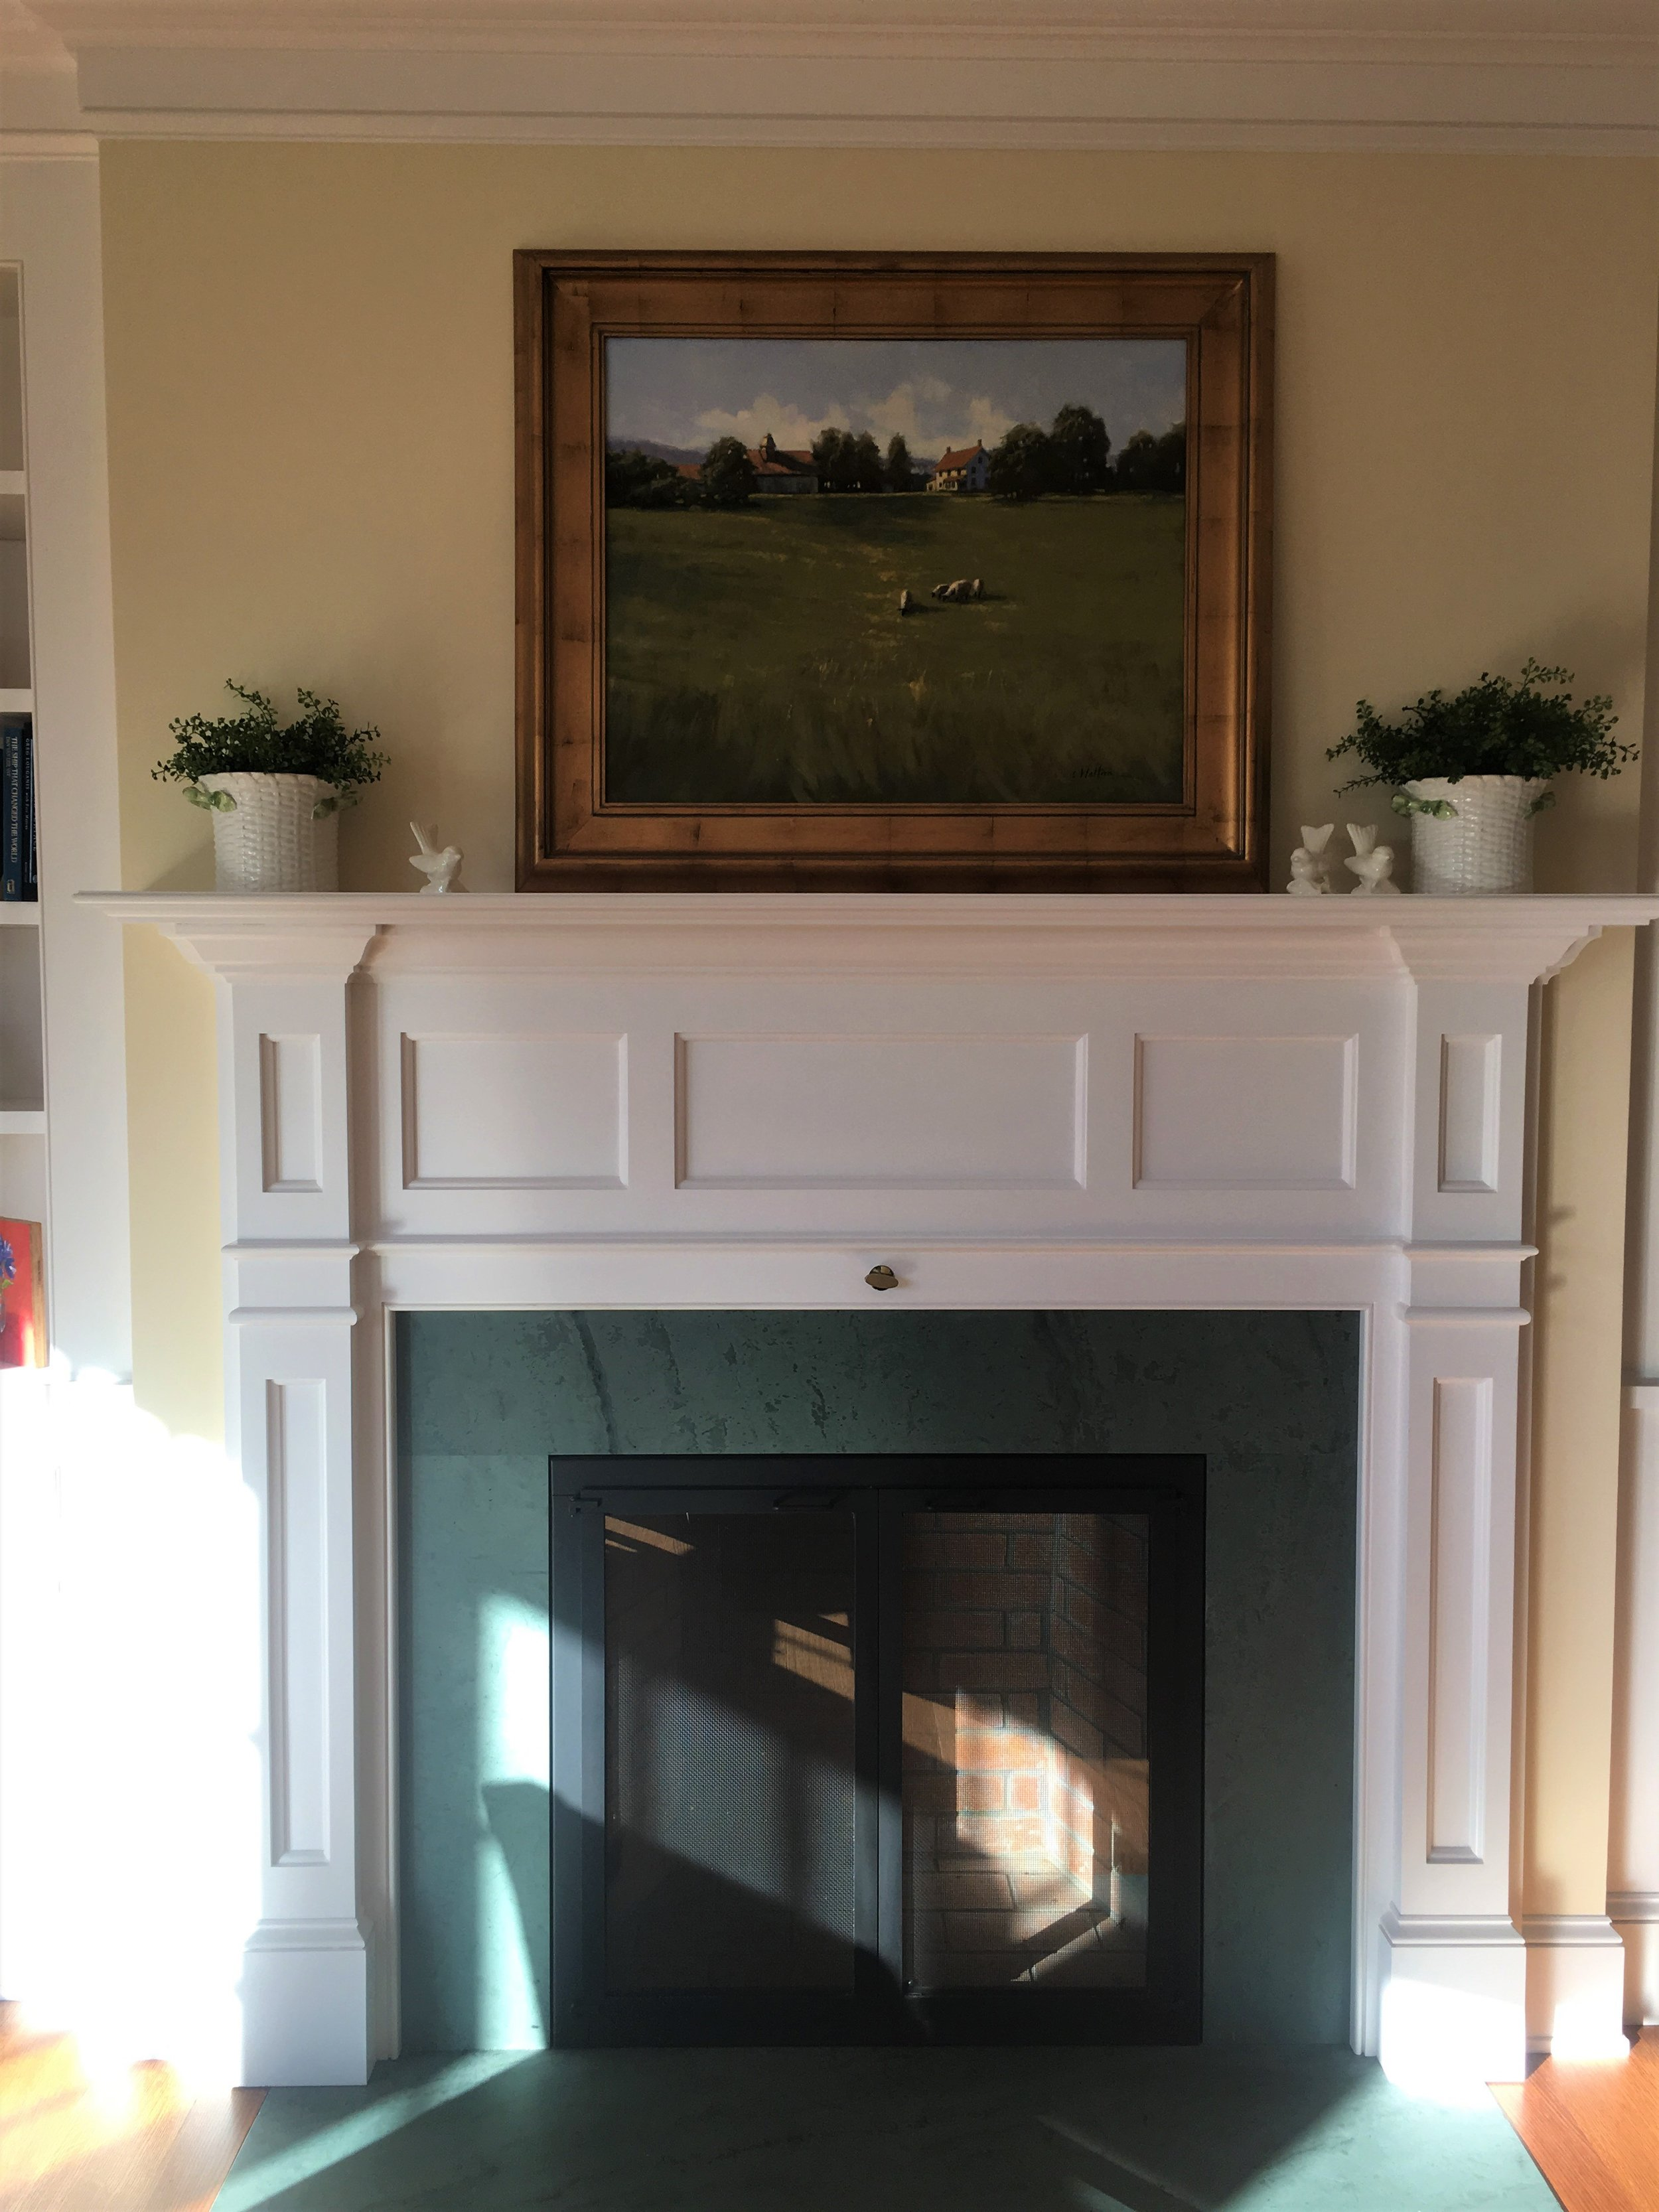 This fireplace is surrounded by Vermont green slate, indigenous to the area the house was built. Believe it or not, this is in a brand new home, but the mantle detail suggests it has been in existence for at least 100 years. Neutral walls and trim never go out of style.